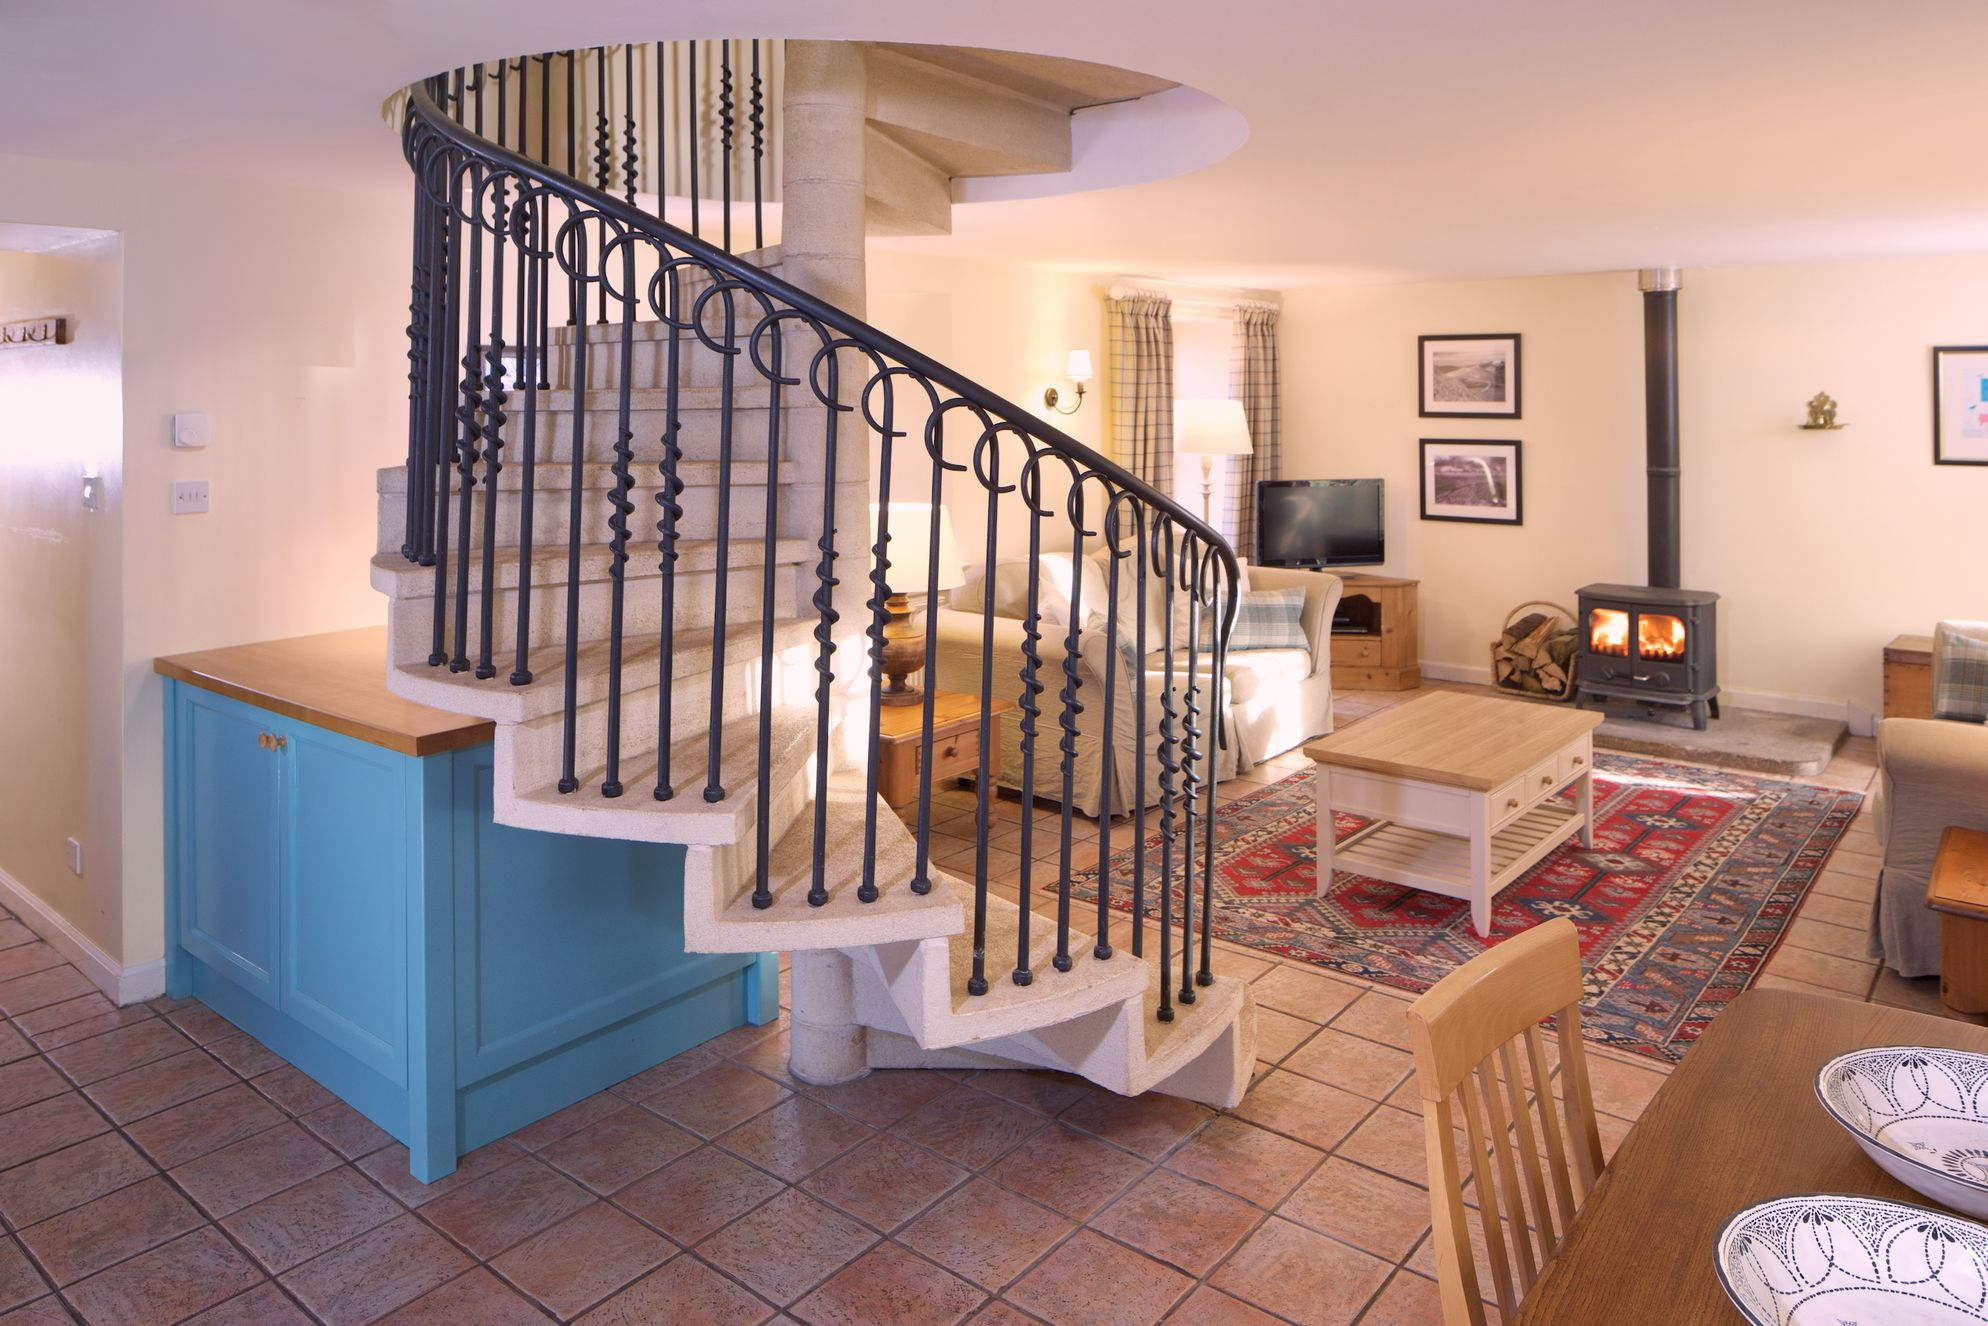 Spacious open plan kitchen, dining and living area with iron spiral staircase leading upstairs and wood burner by the sofas